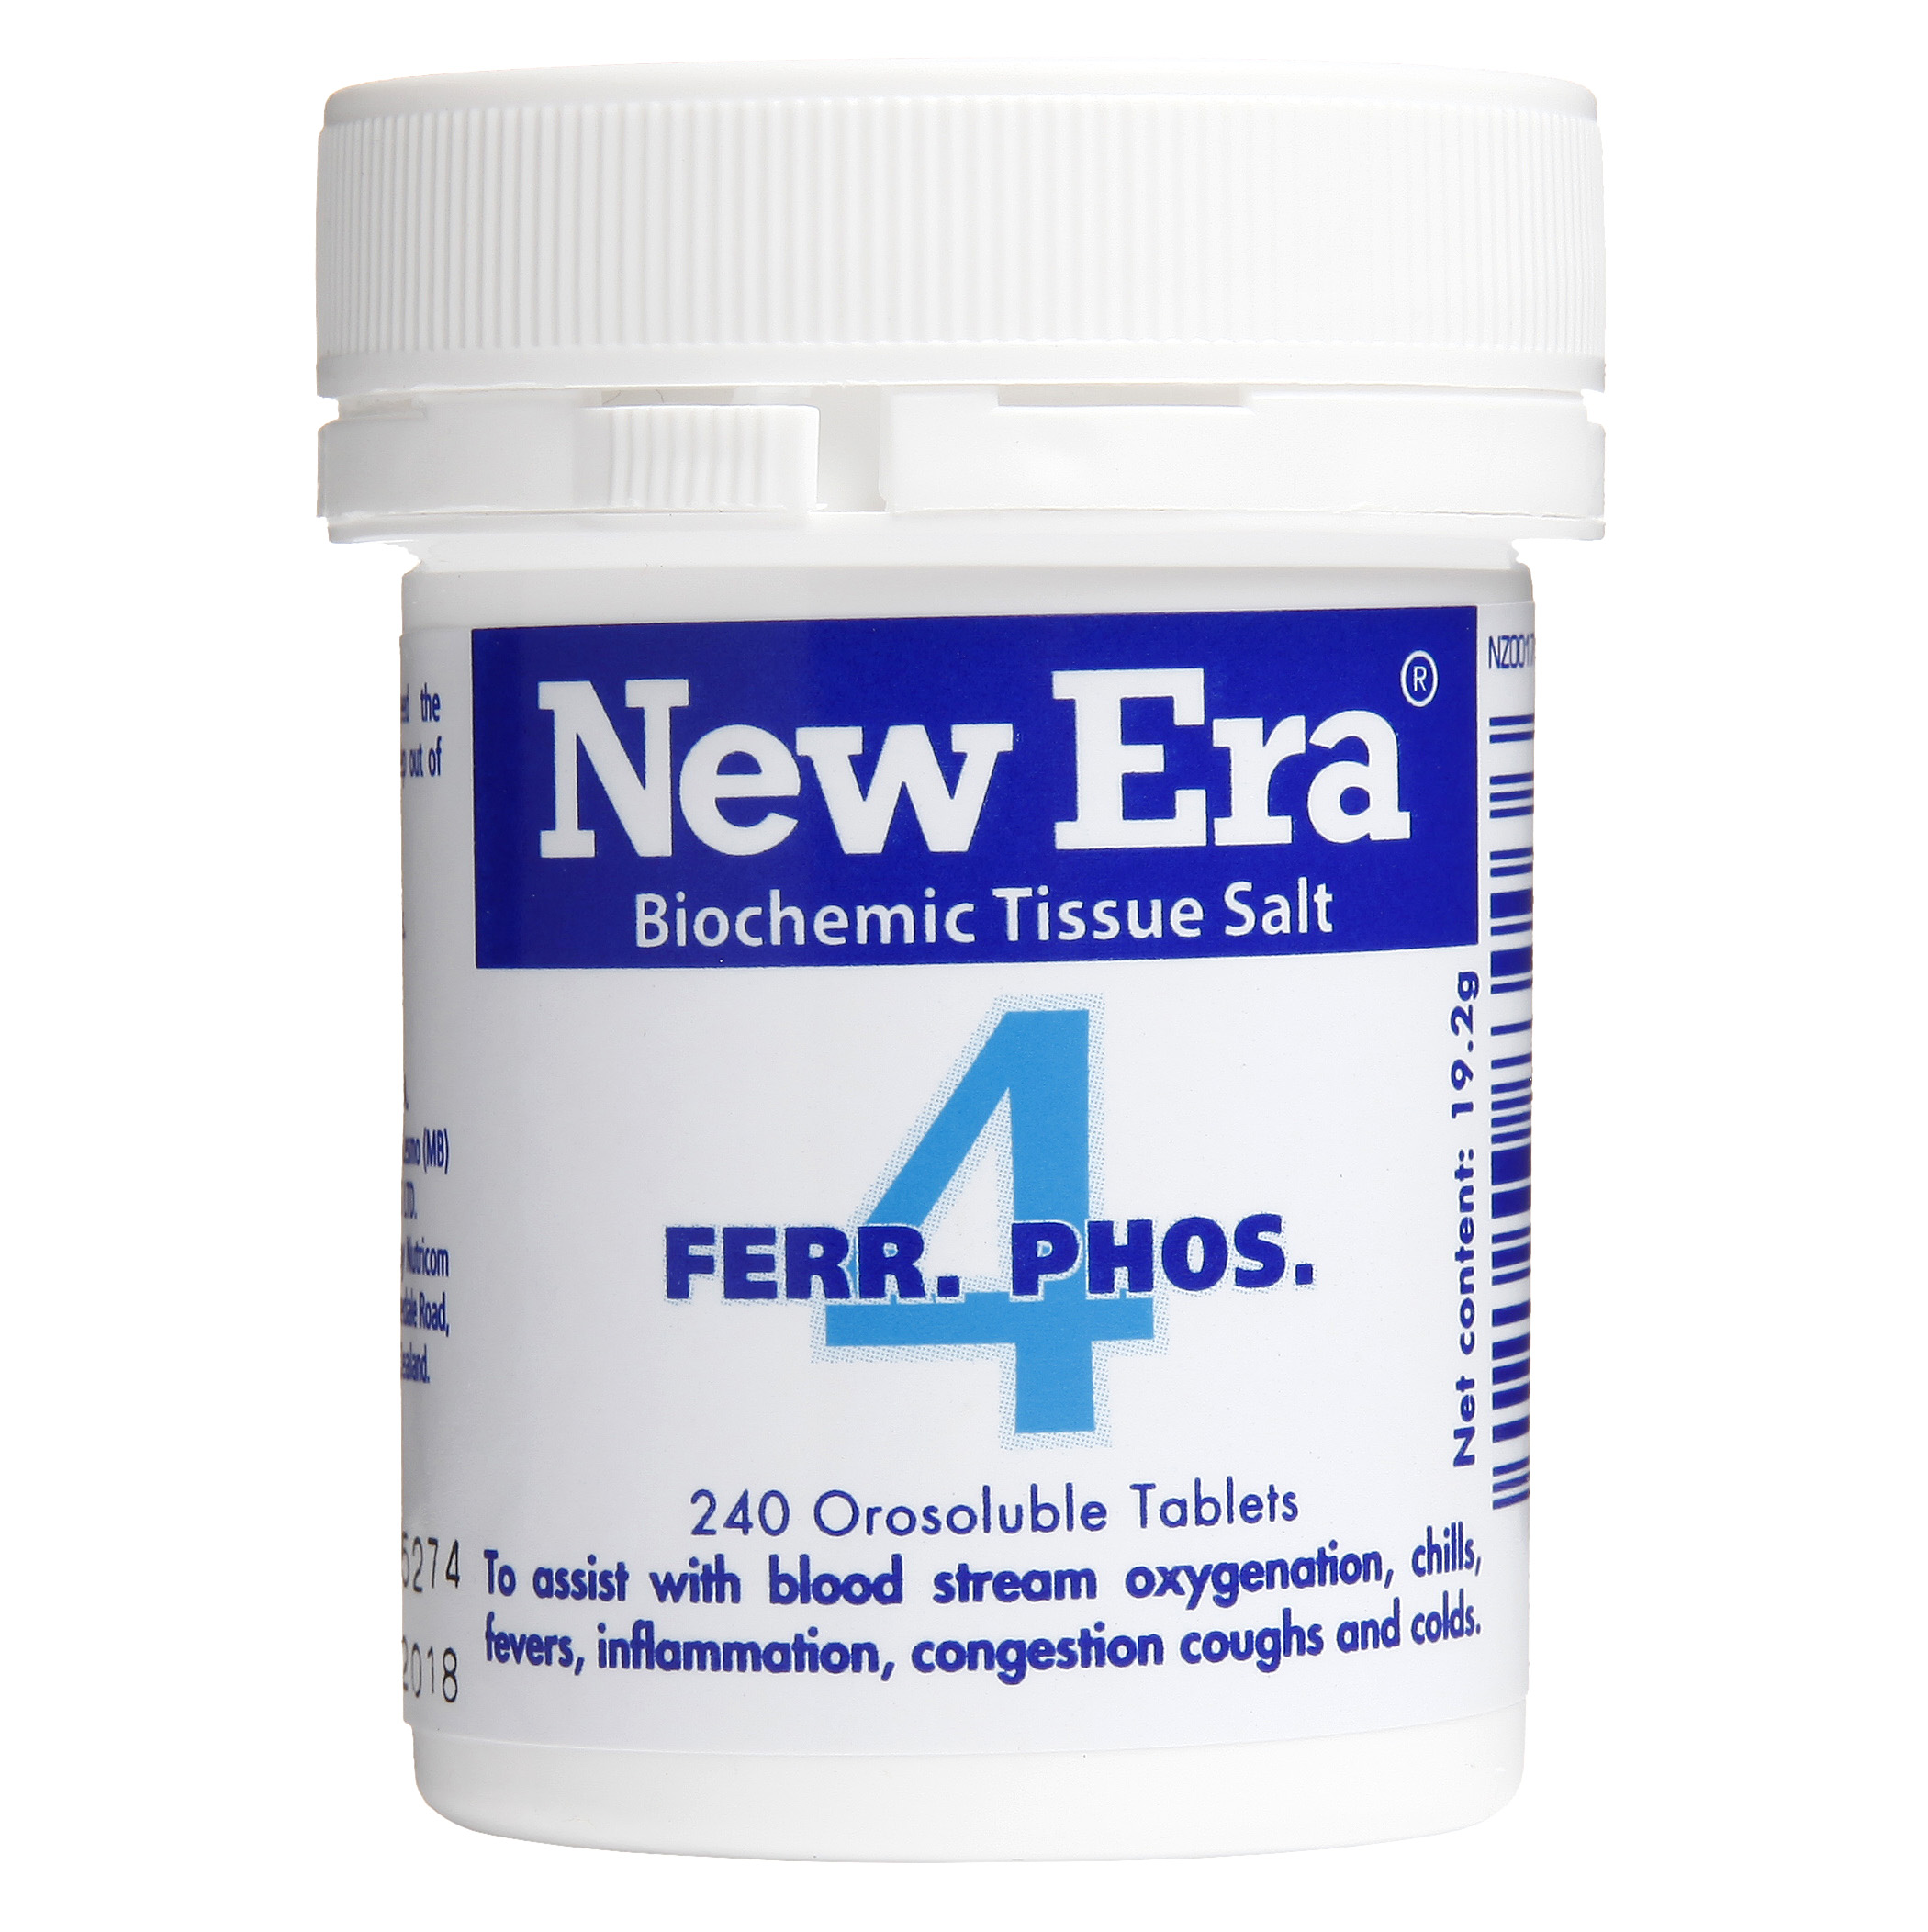 New Era No 4 Ferr. Phos Mineral Cell Salt